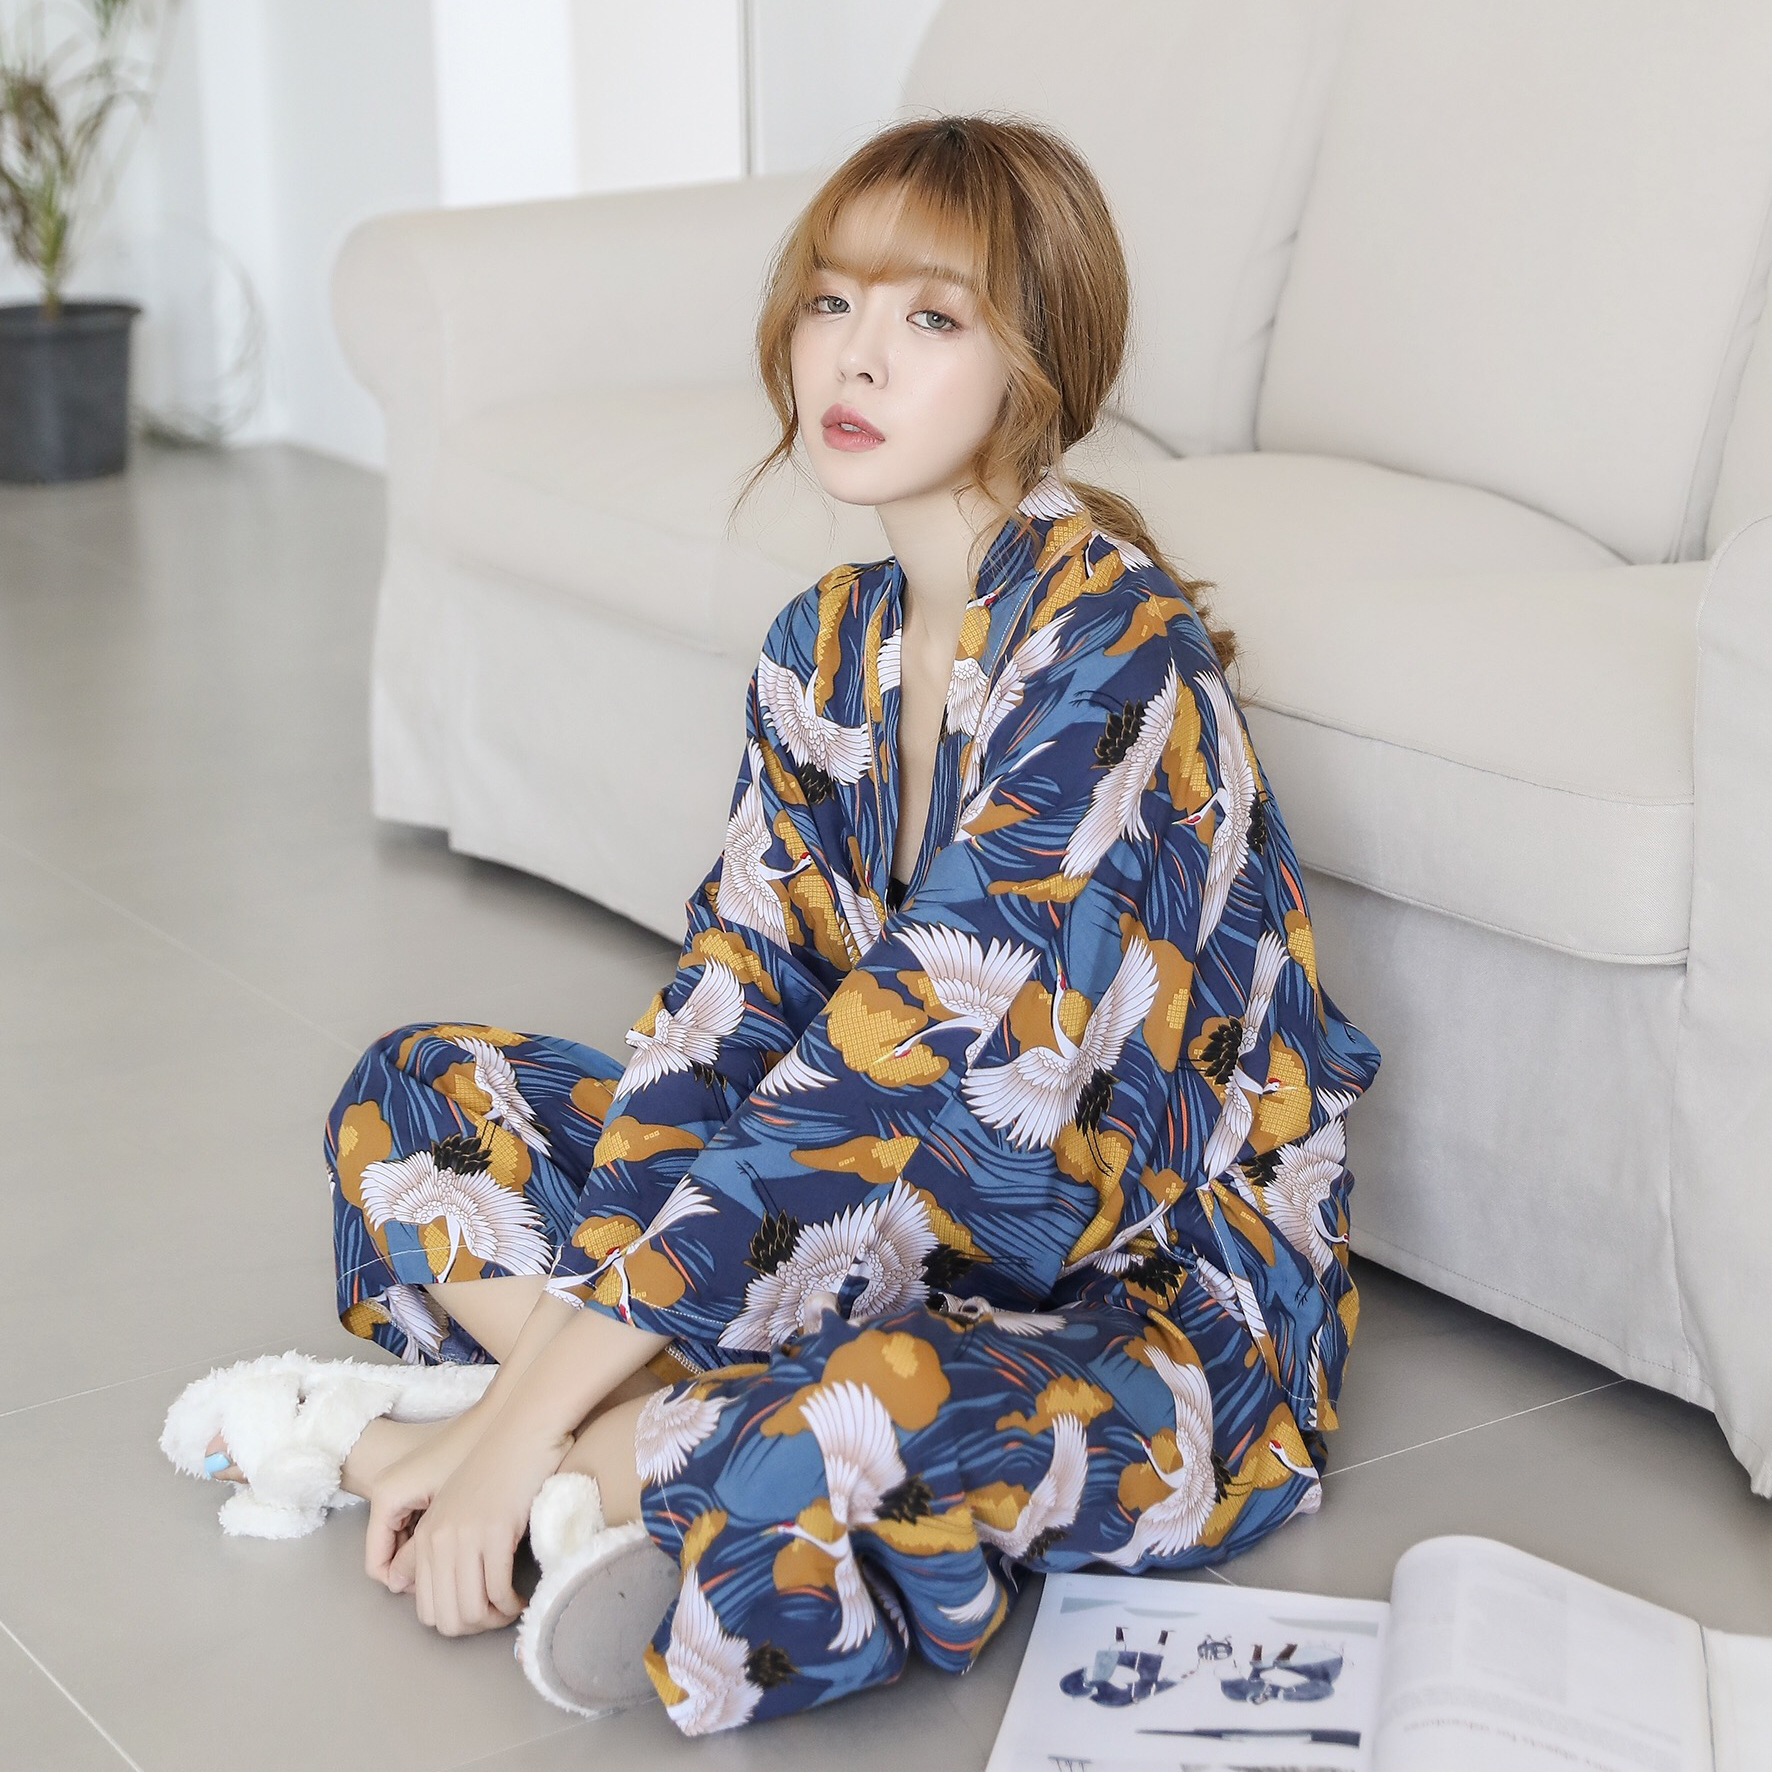 Autumn New Products Comfortable Cotton Silk WOMEN'S Pajama Suit Soft Breathable Crane Japanese-style Kimono Bandage Cloth Home W